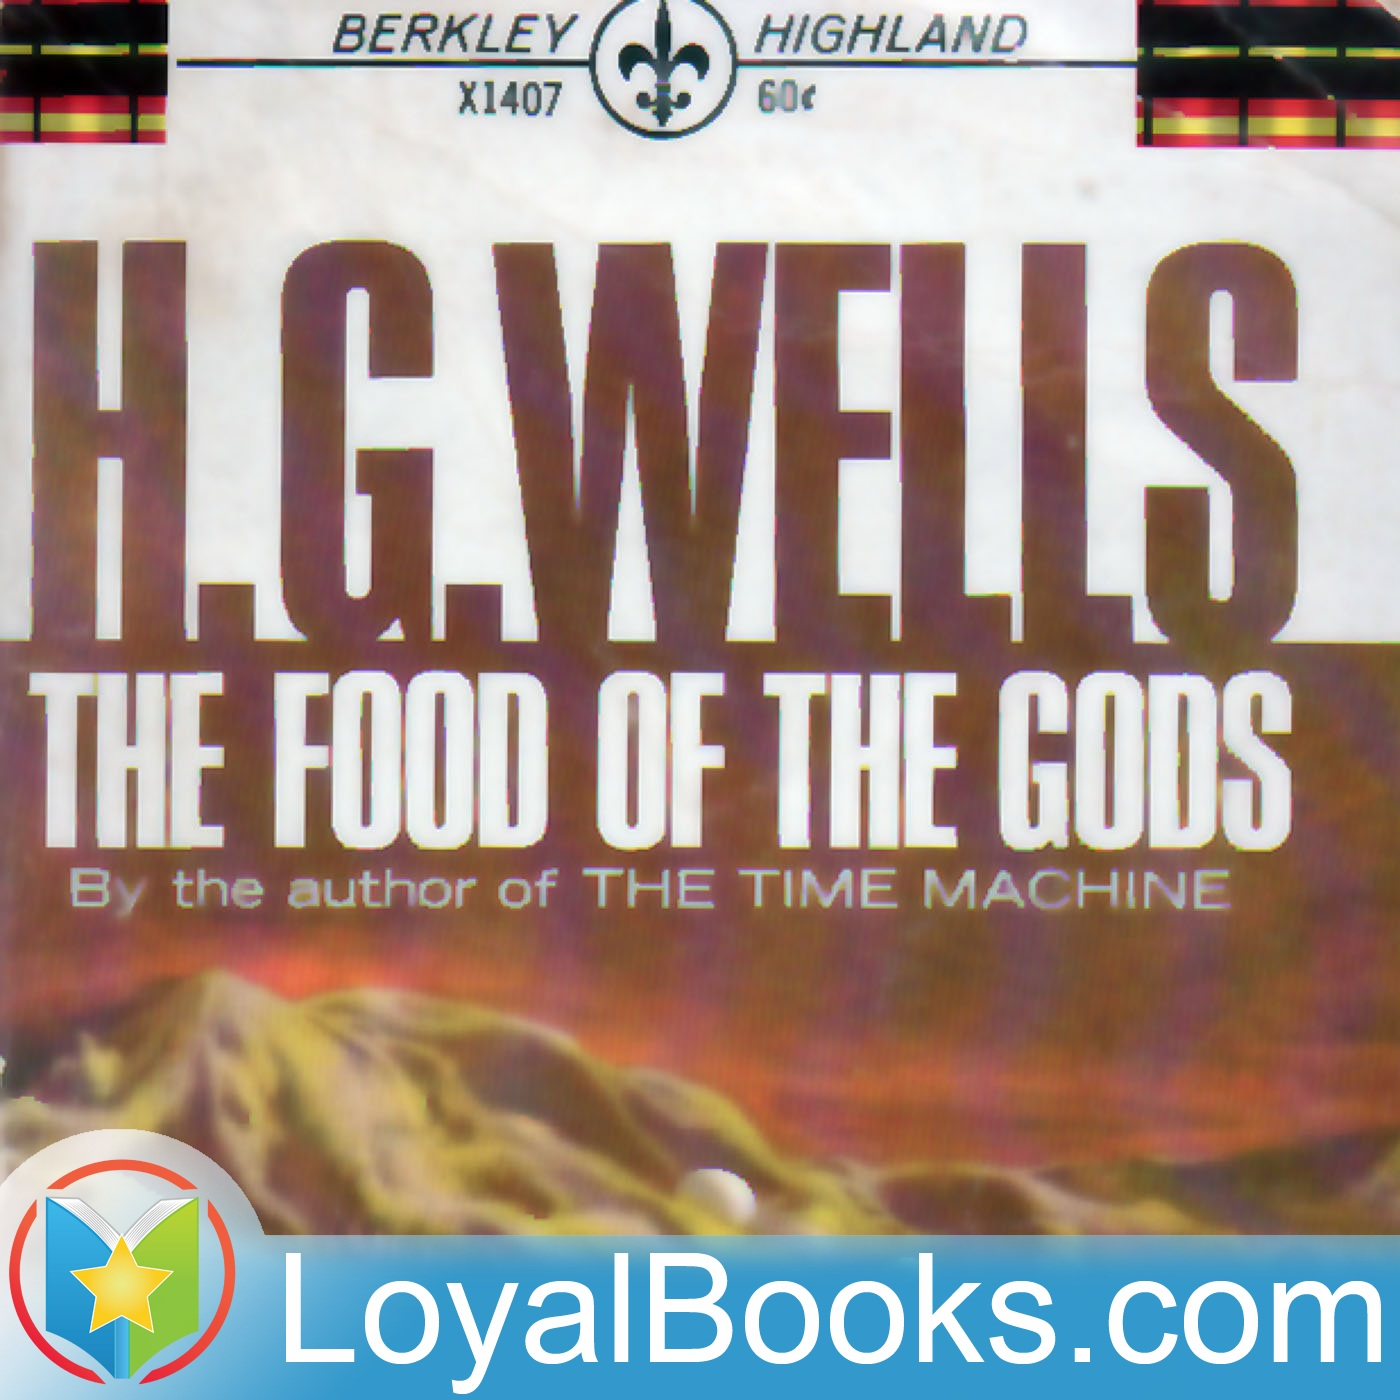 <![CDATA[The Food of the Gods and How it Came to Earth by H. G. Wells]]>